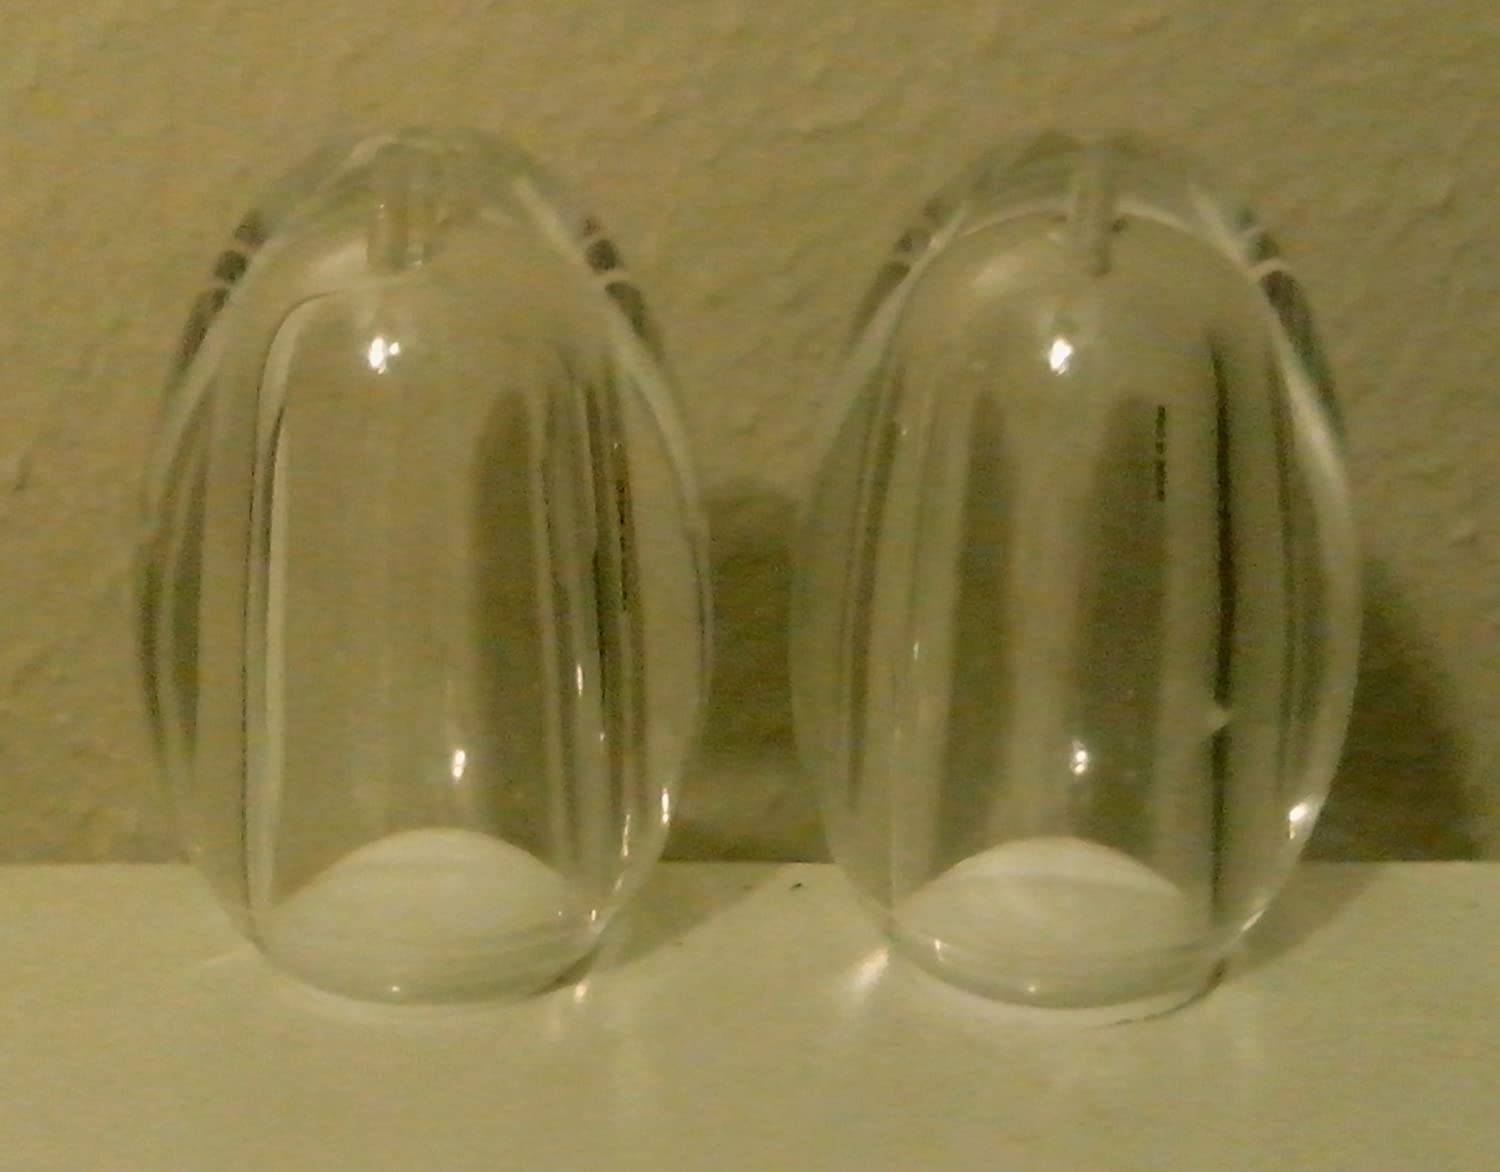 Acrylic Just Like Egg Shakers (Set of 2), 2.0 x 3.0, by William Bounds just william